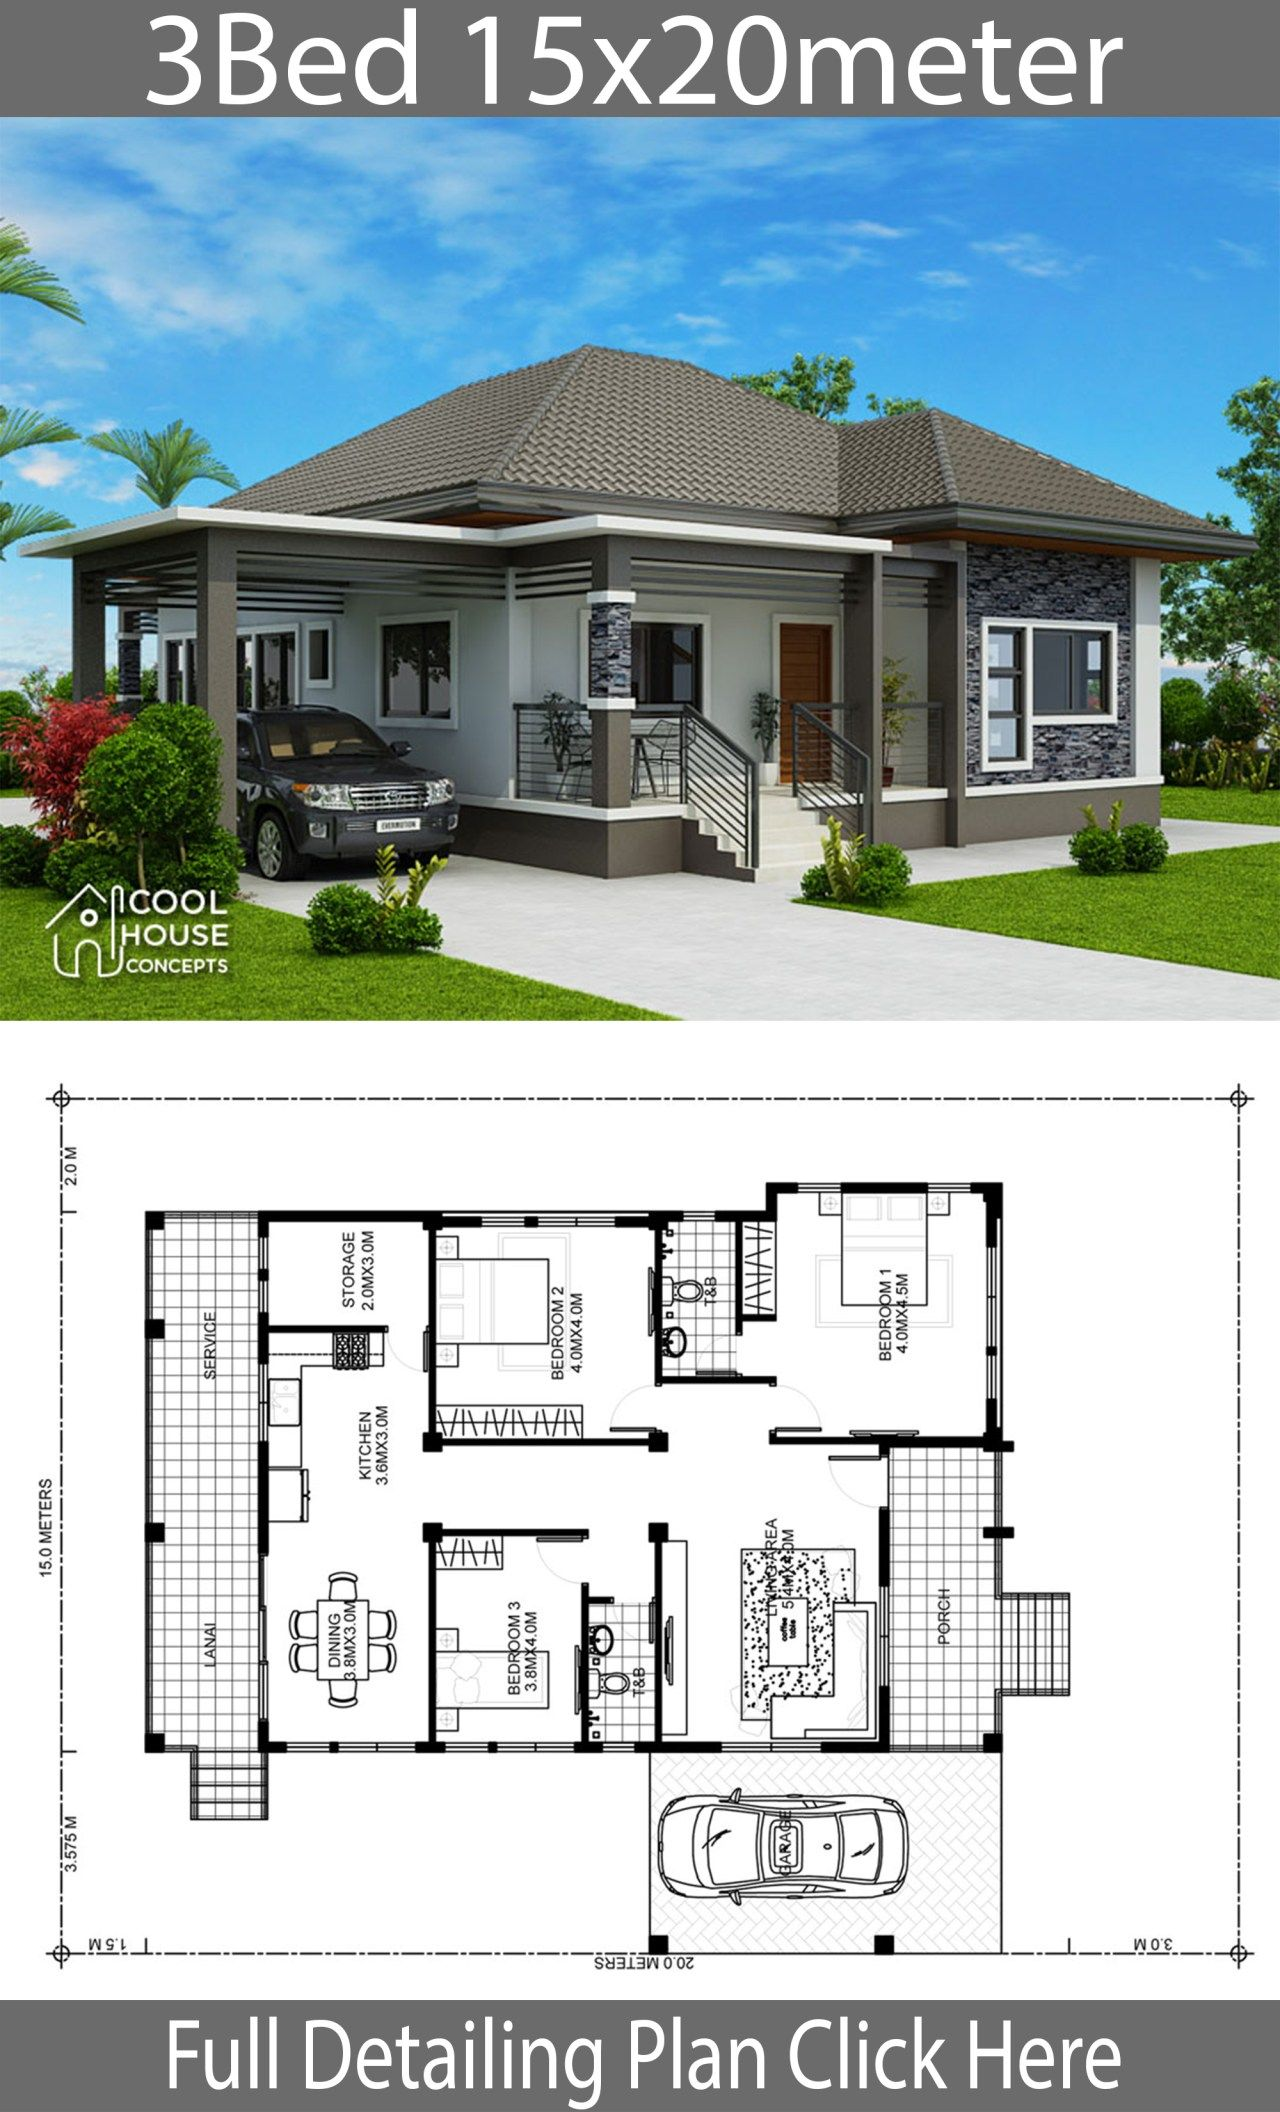 Home Design Plan 15x20m With 3 Bedrooms Home Ideas Model House Plan House Front Design Beautiful House Plans